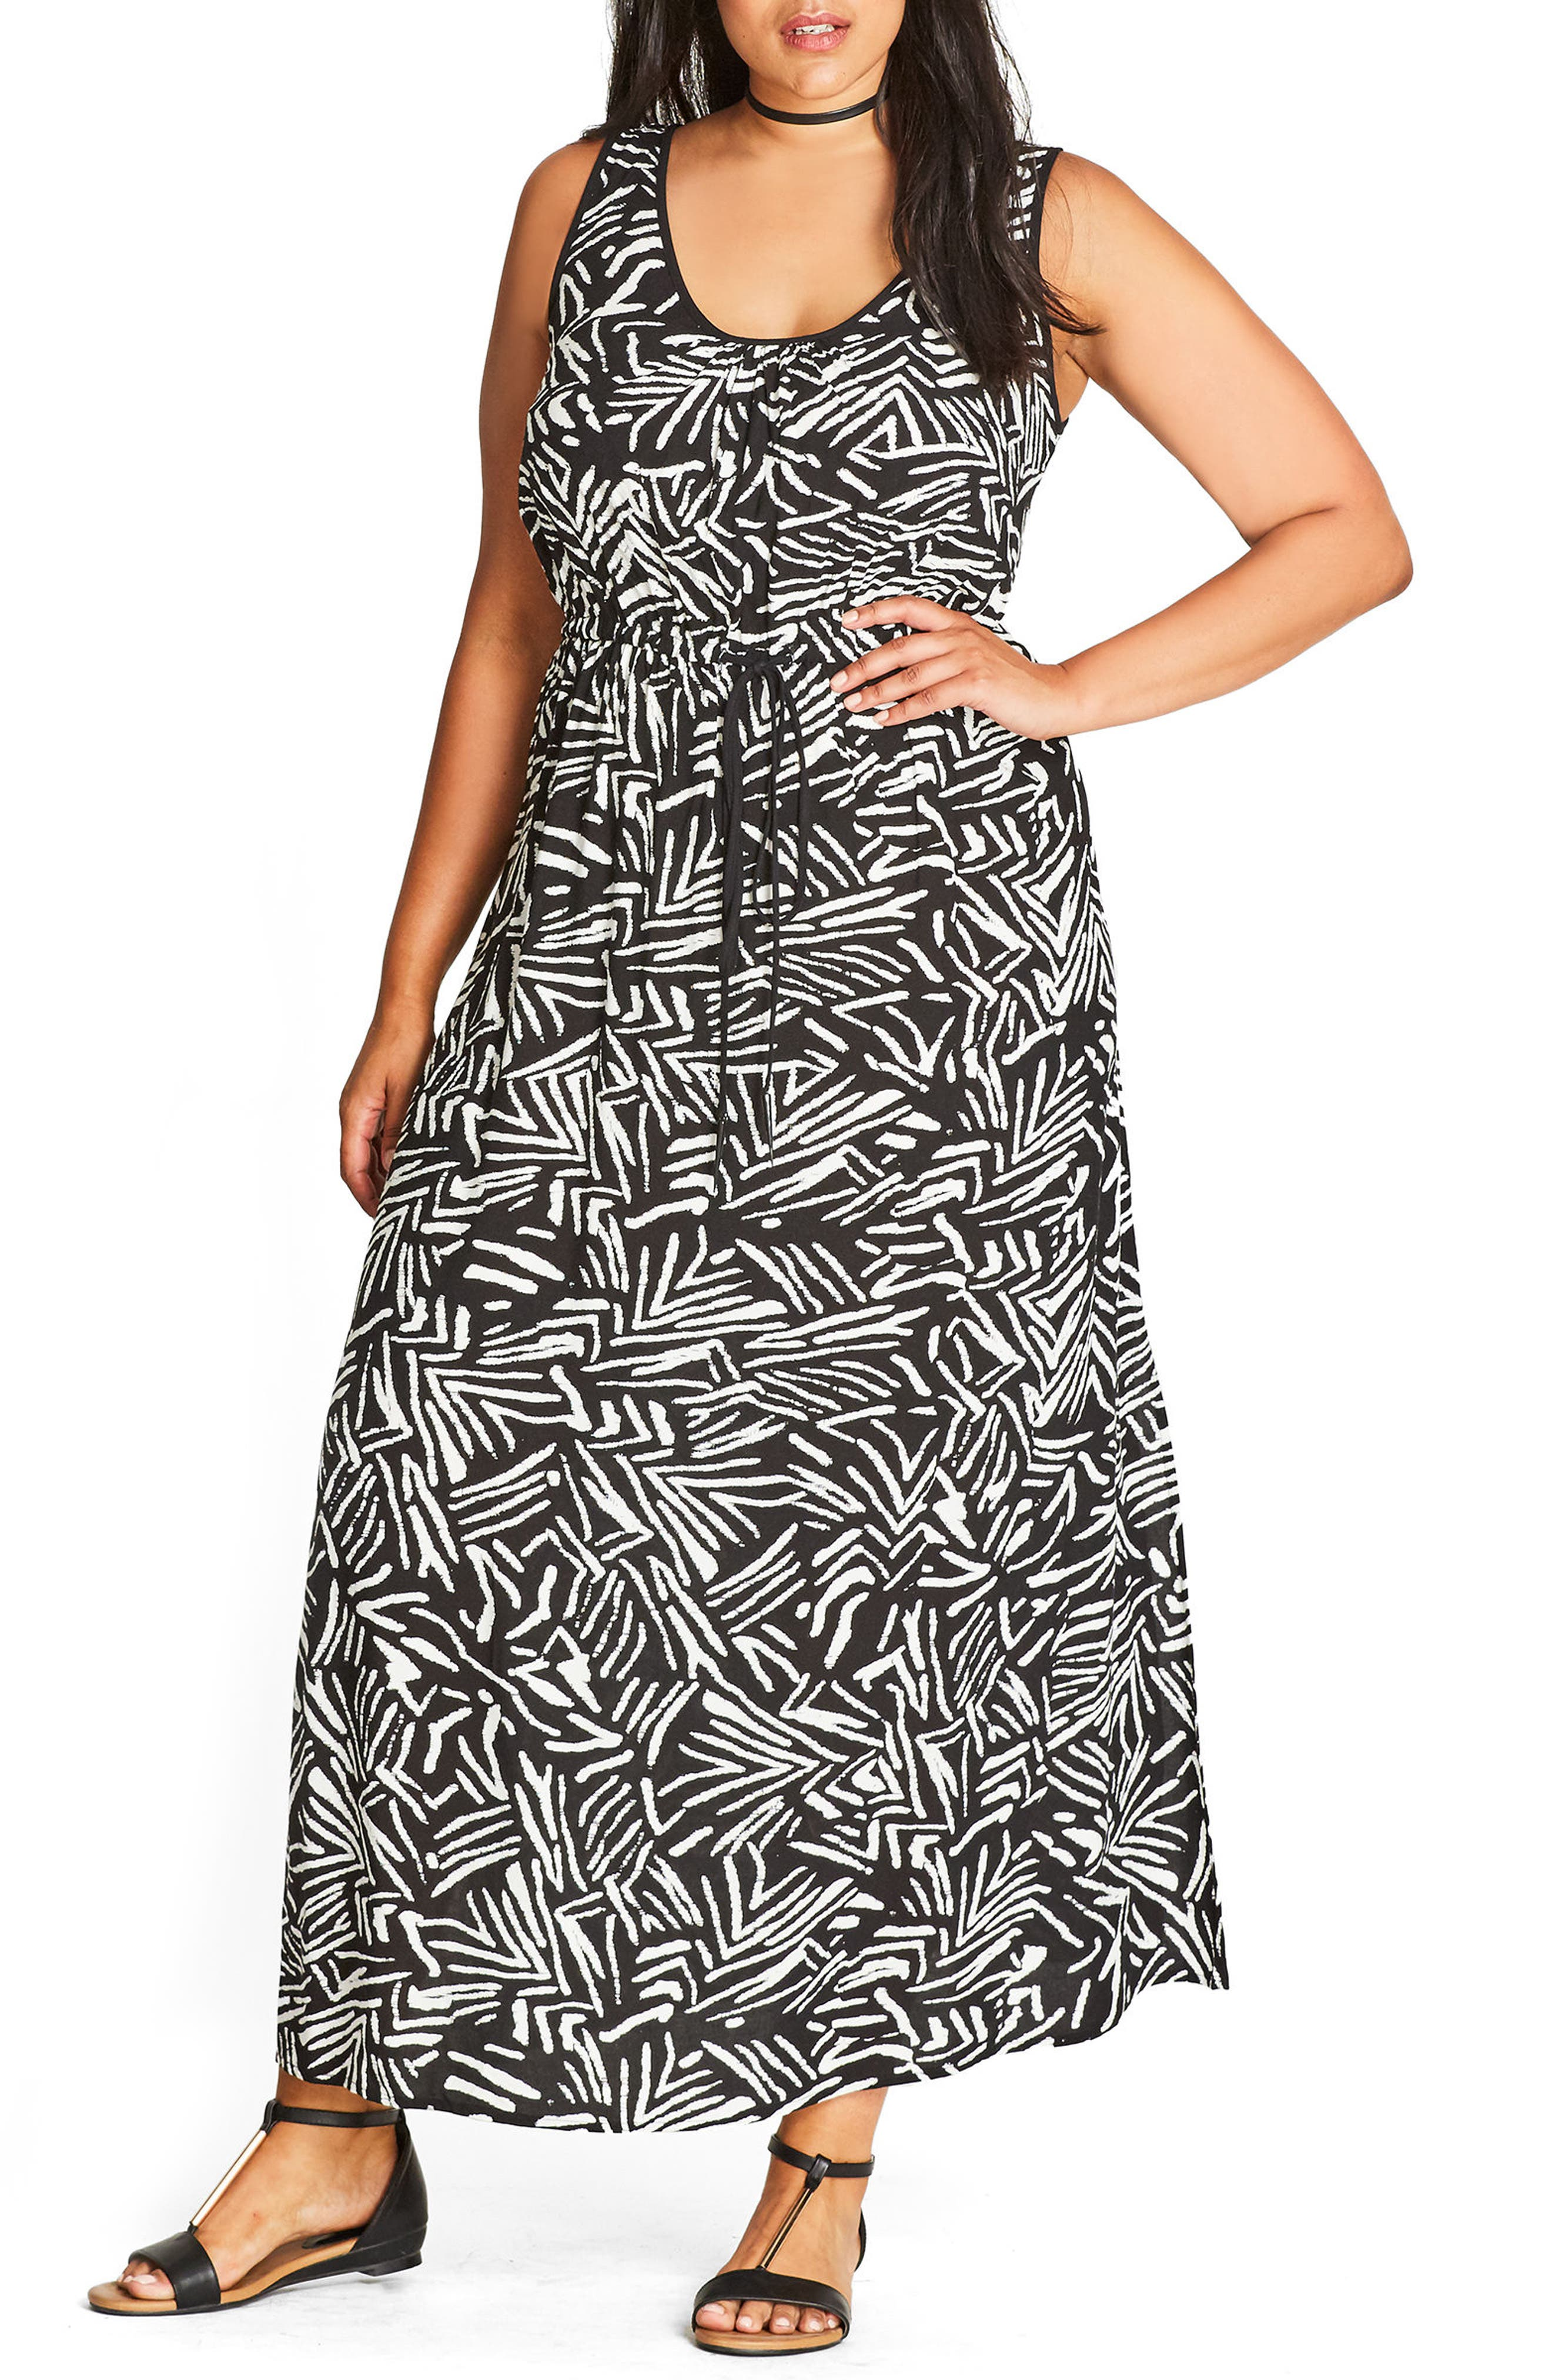 Alternate Image 1 Selected - City Chic Summer Party Maxi Dress (Plus Size)